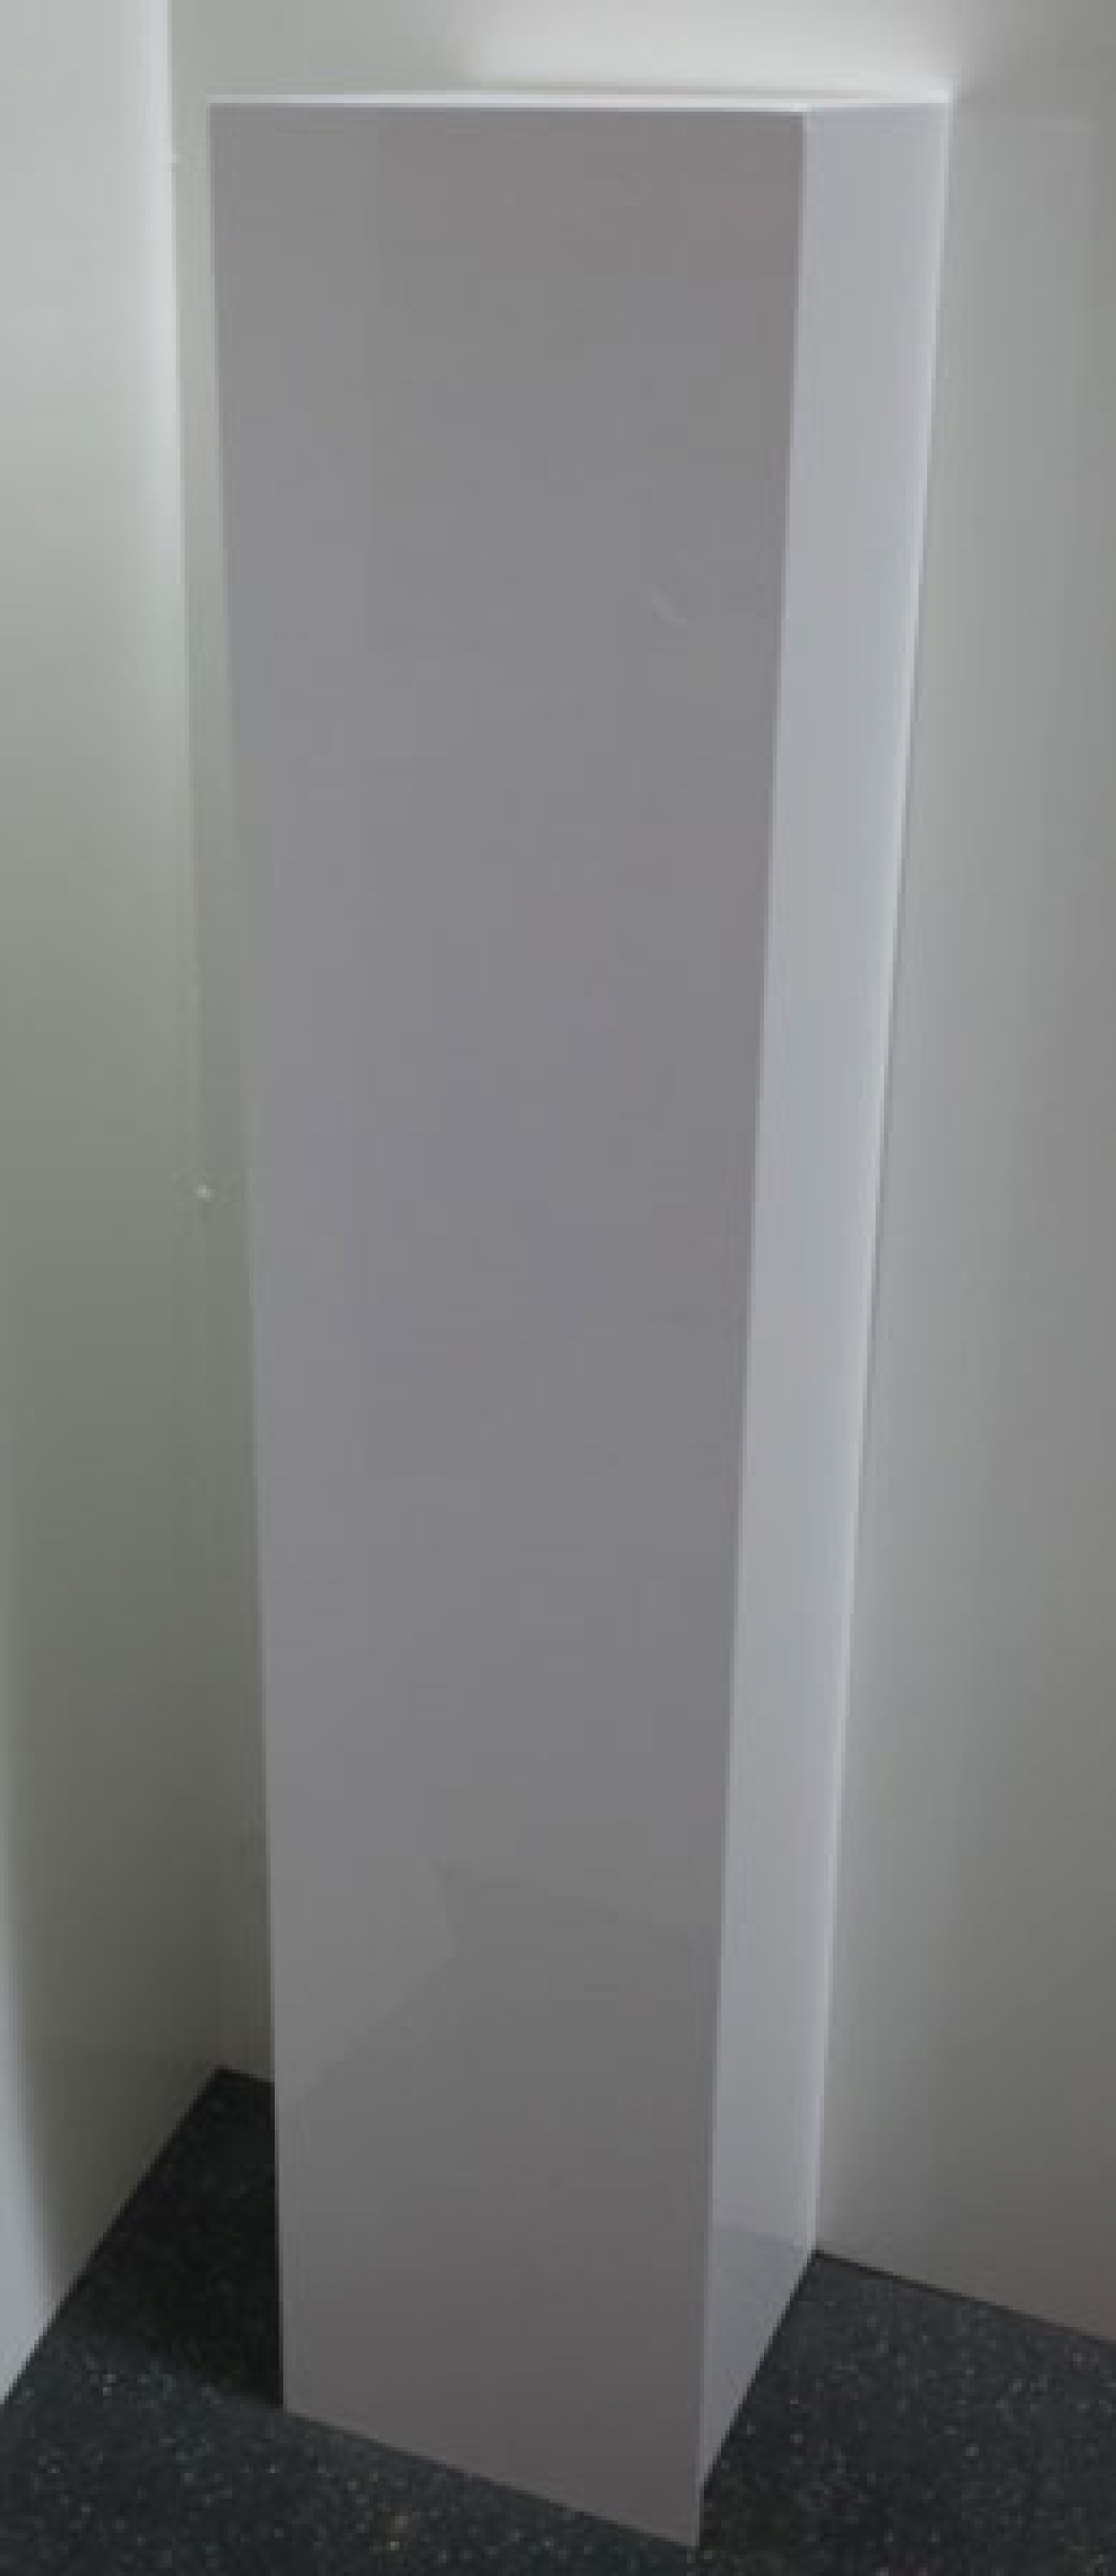 Bathroom Tall boy cabinet [300x330mm]